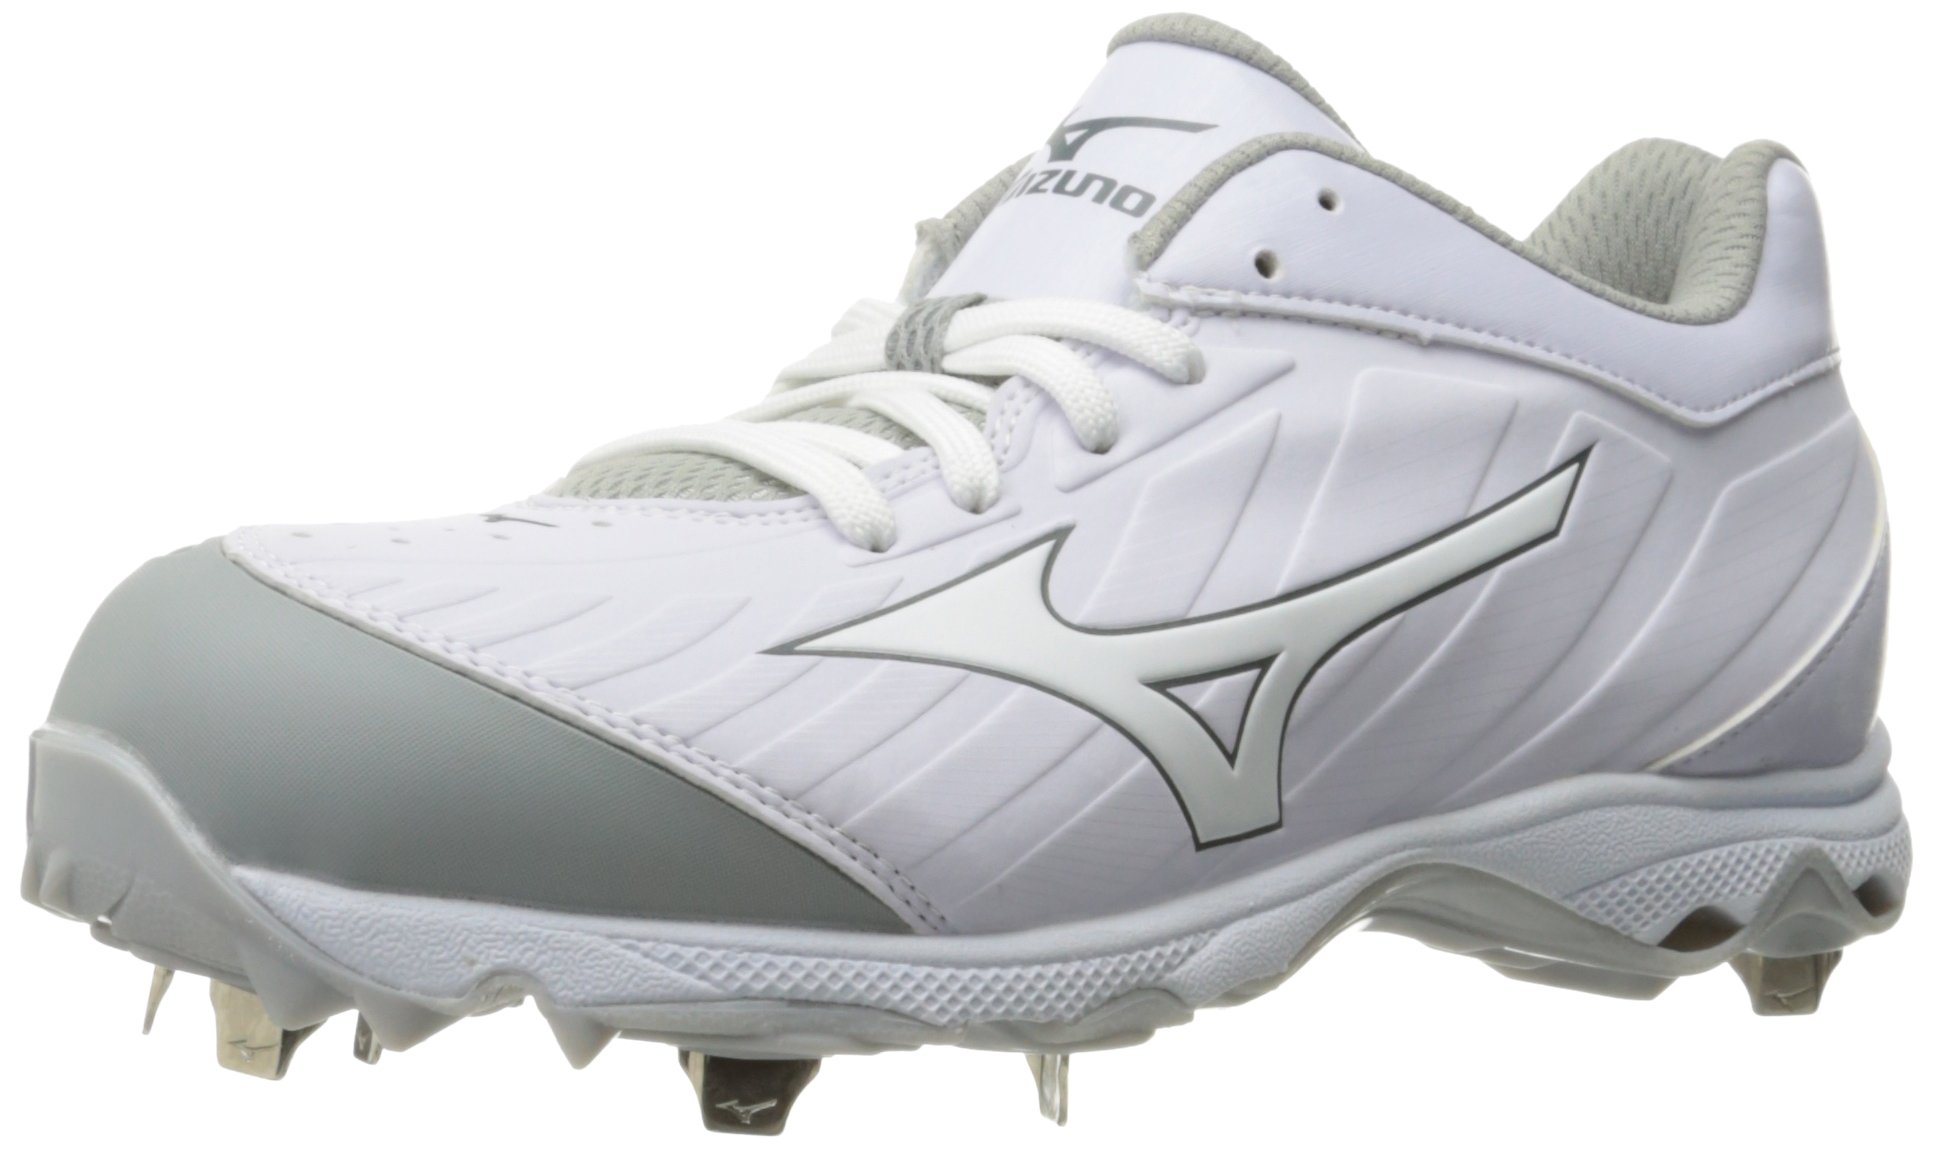 Mizuno Women's 9-spike advanced sweep 3 Softball Shoe, White, 7.5 D US by Mizuno